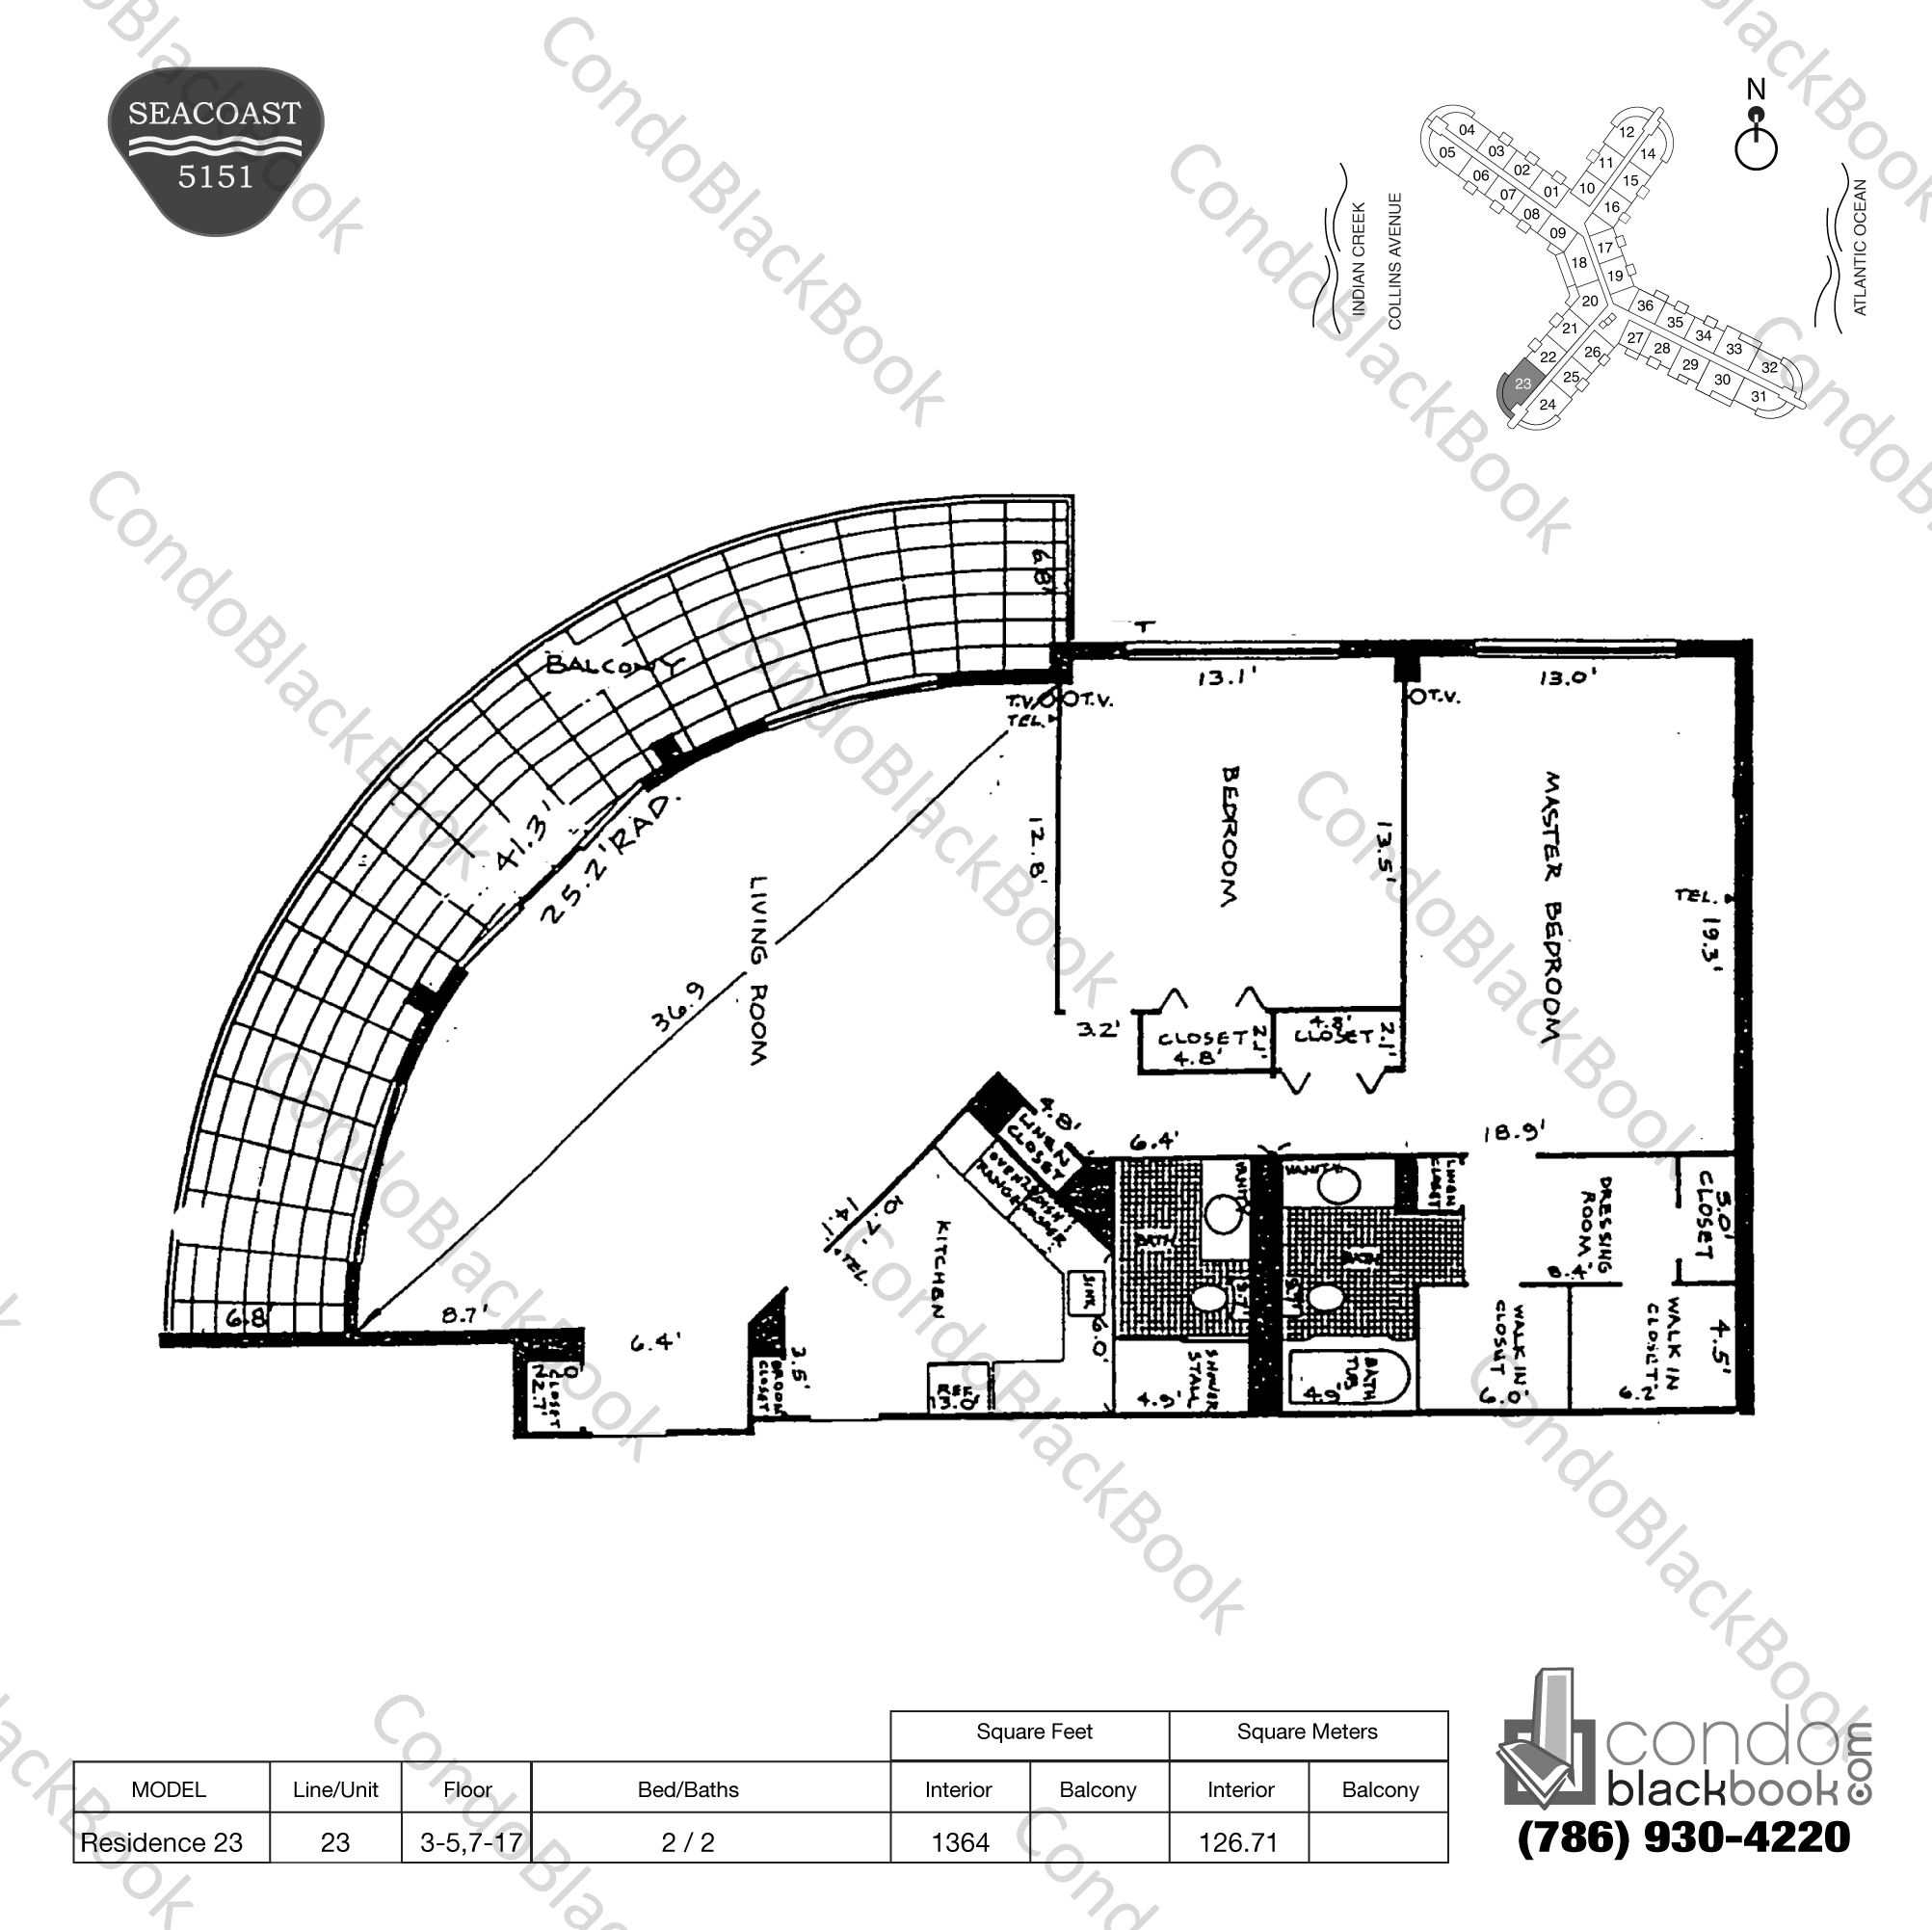 Floor plan for Seacoast 5151 Mid-Beach Miami Beach, model Residence 23, line 23, 2 / 2 bedrooms, 1364 sq ft